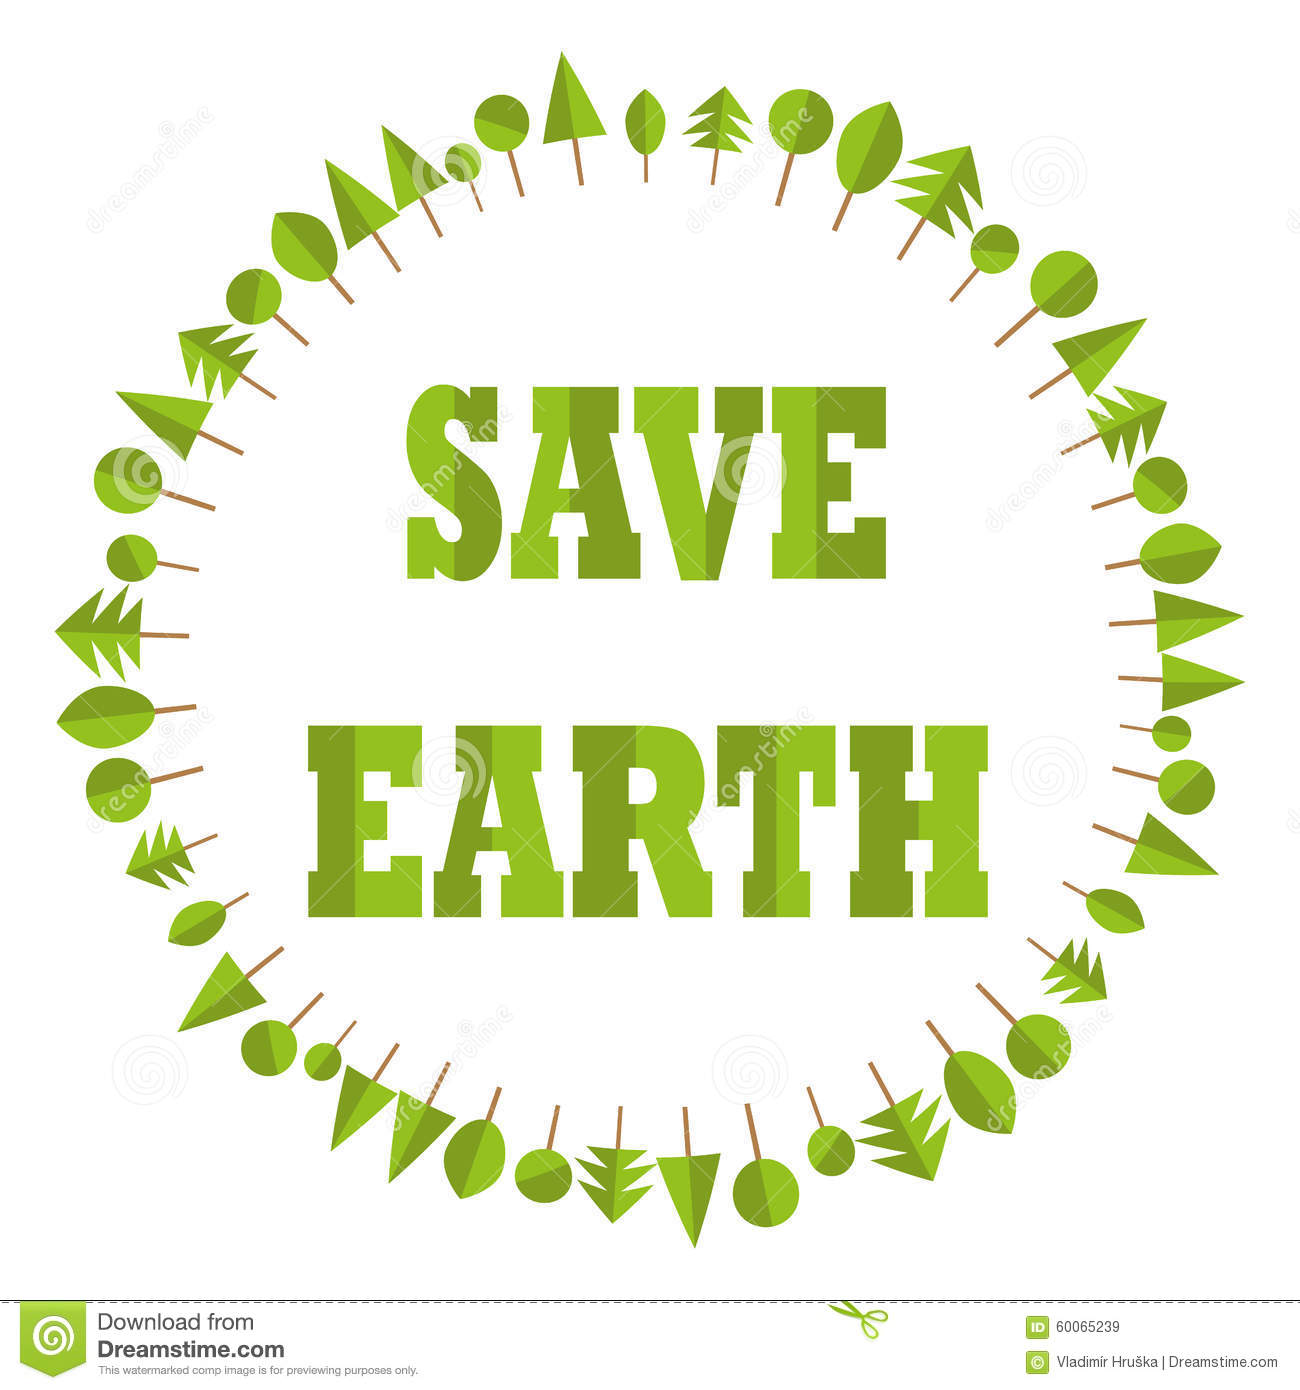 use less paper save trees